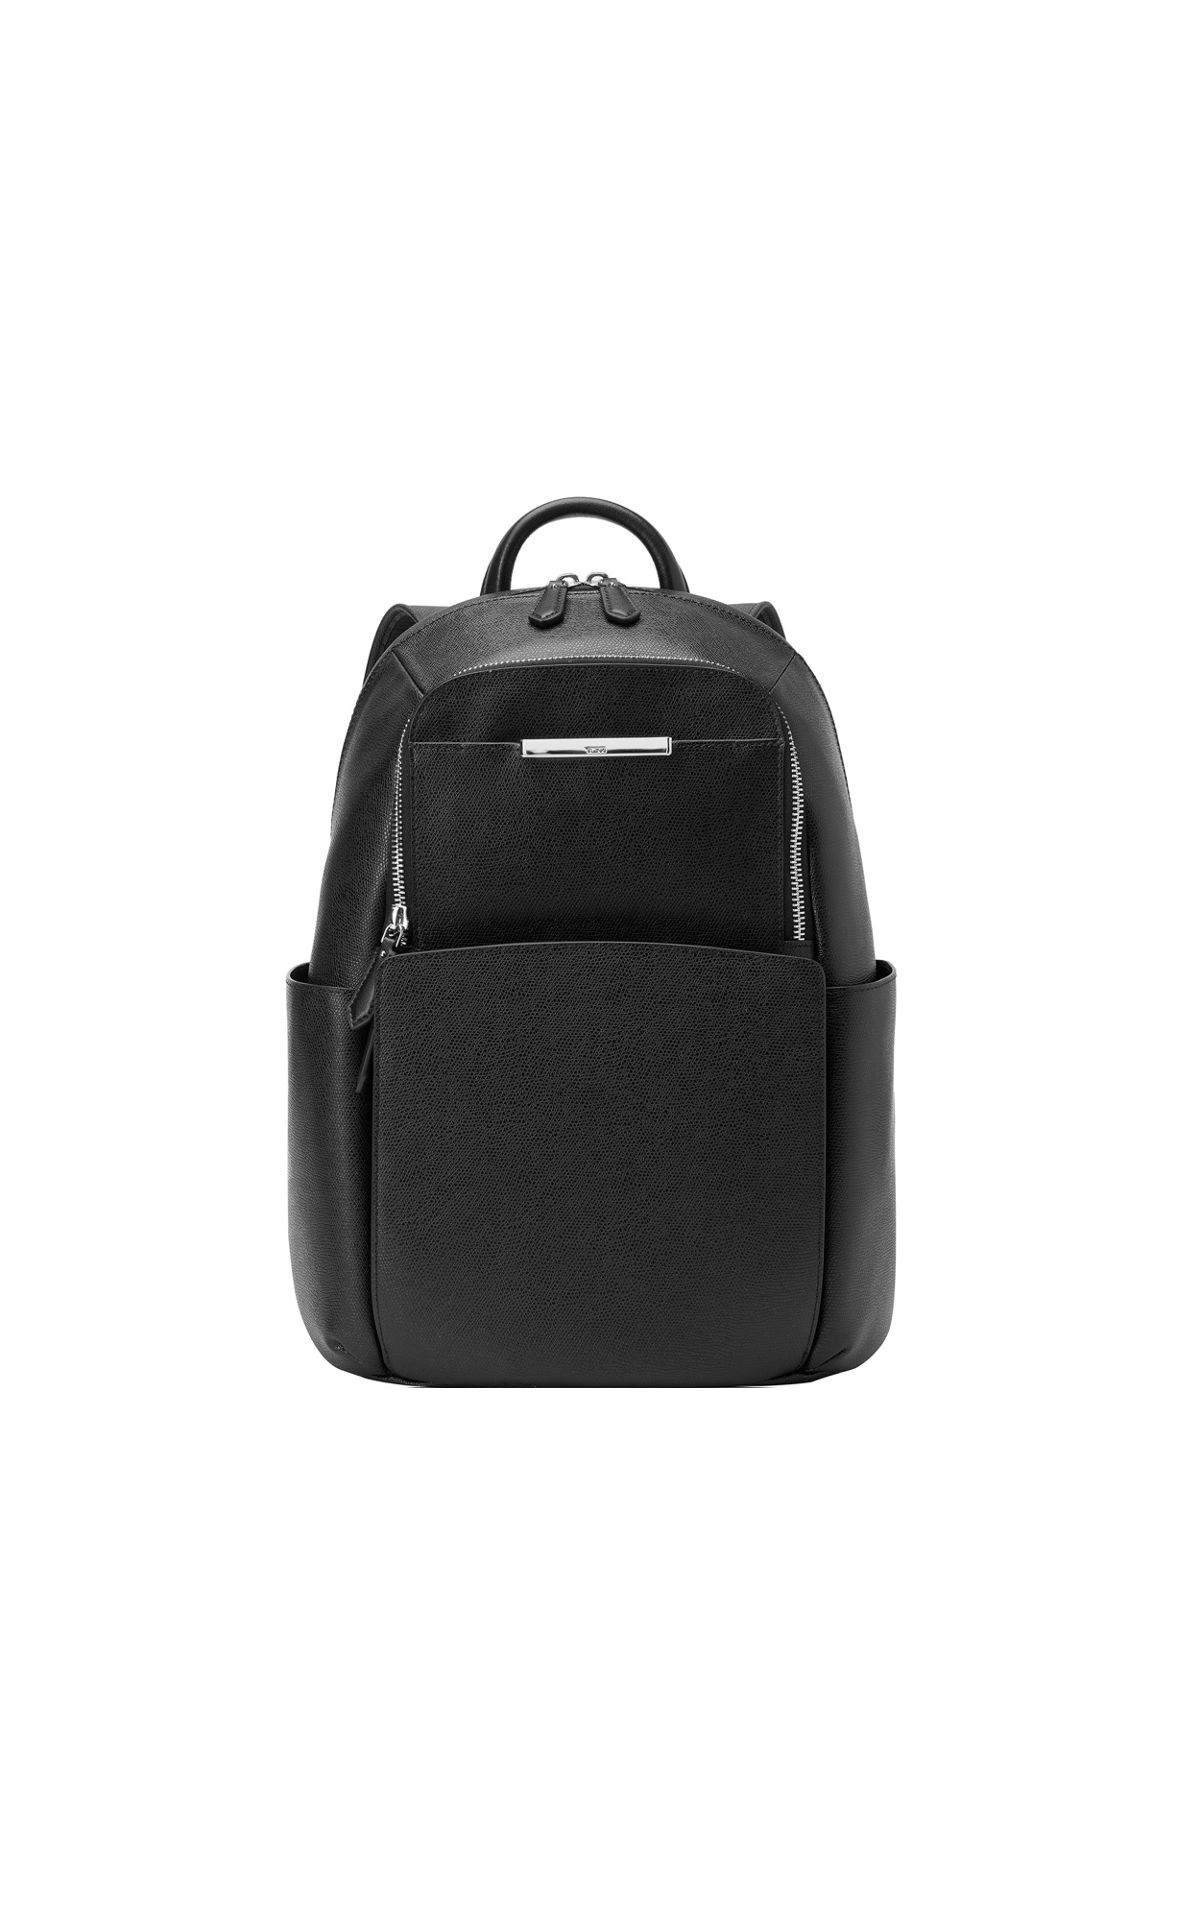 Peggy backpack Tumi